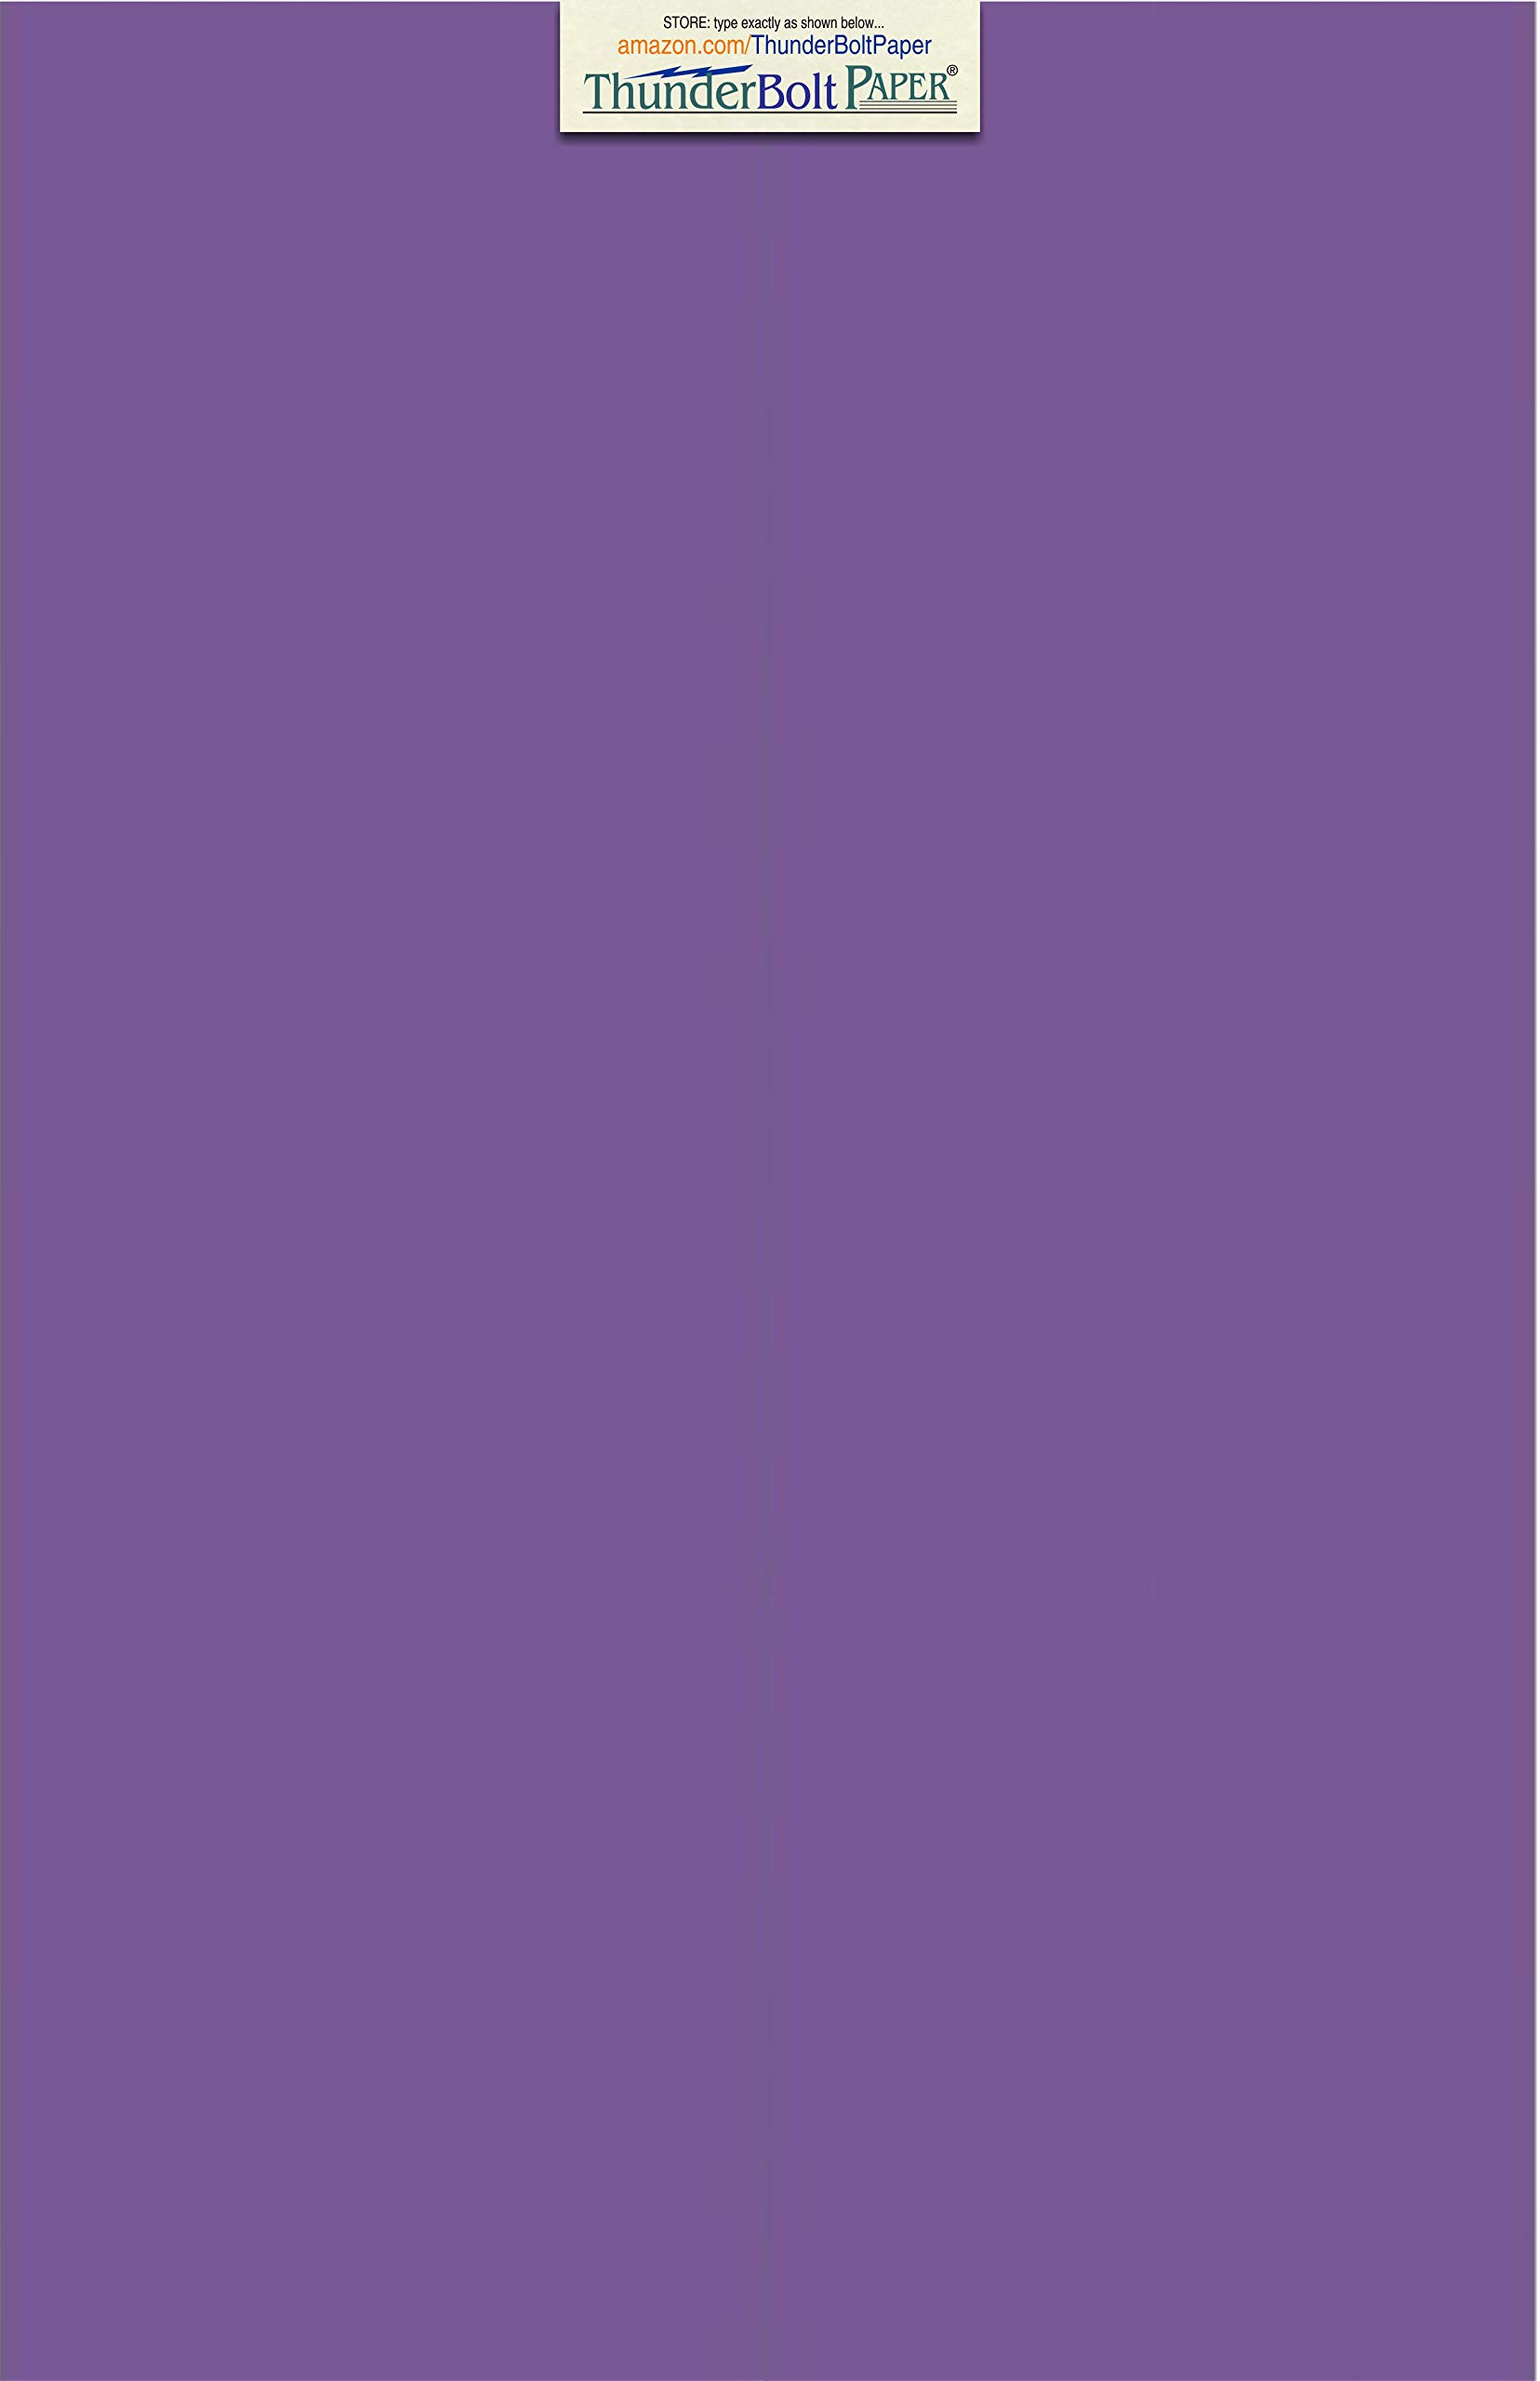 25 Bright Purple Grape 65# Cardstock Paper 11'' X 17'' (11X17 Inches) Tabloid|Ledger|Booklet Size - 65Cover/45Bond Light Weight Card Stock - Bright Printable Smooth Paper Surface by ThunderBolt Paper